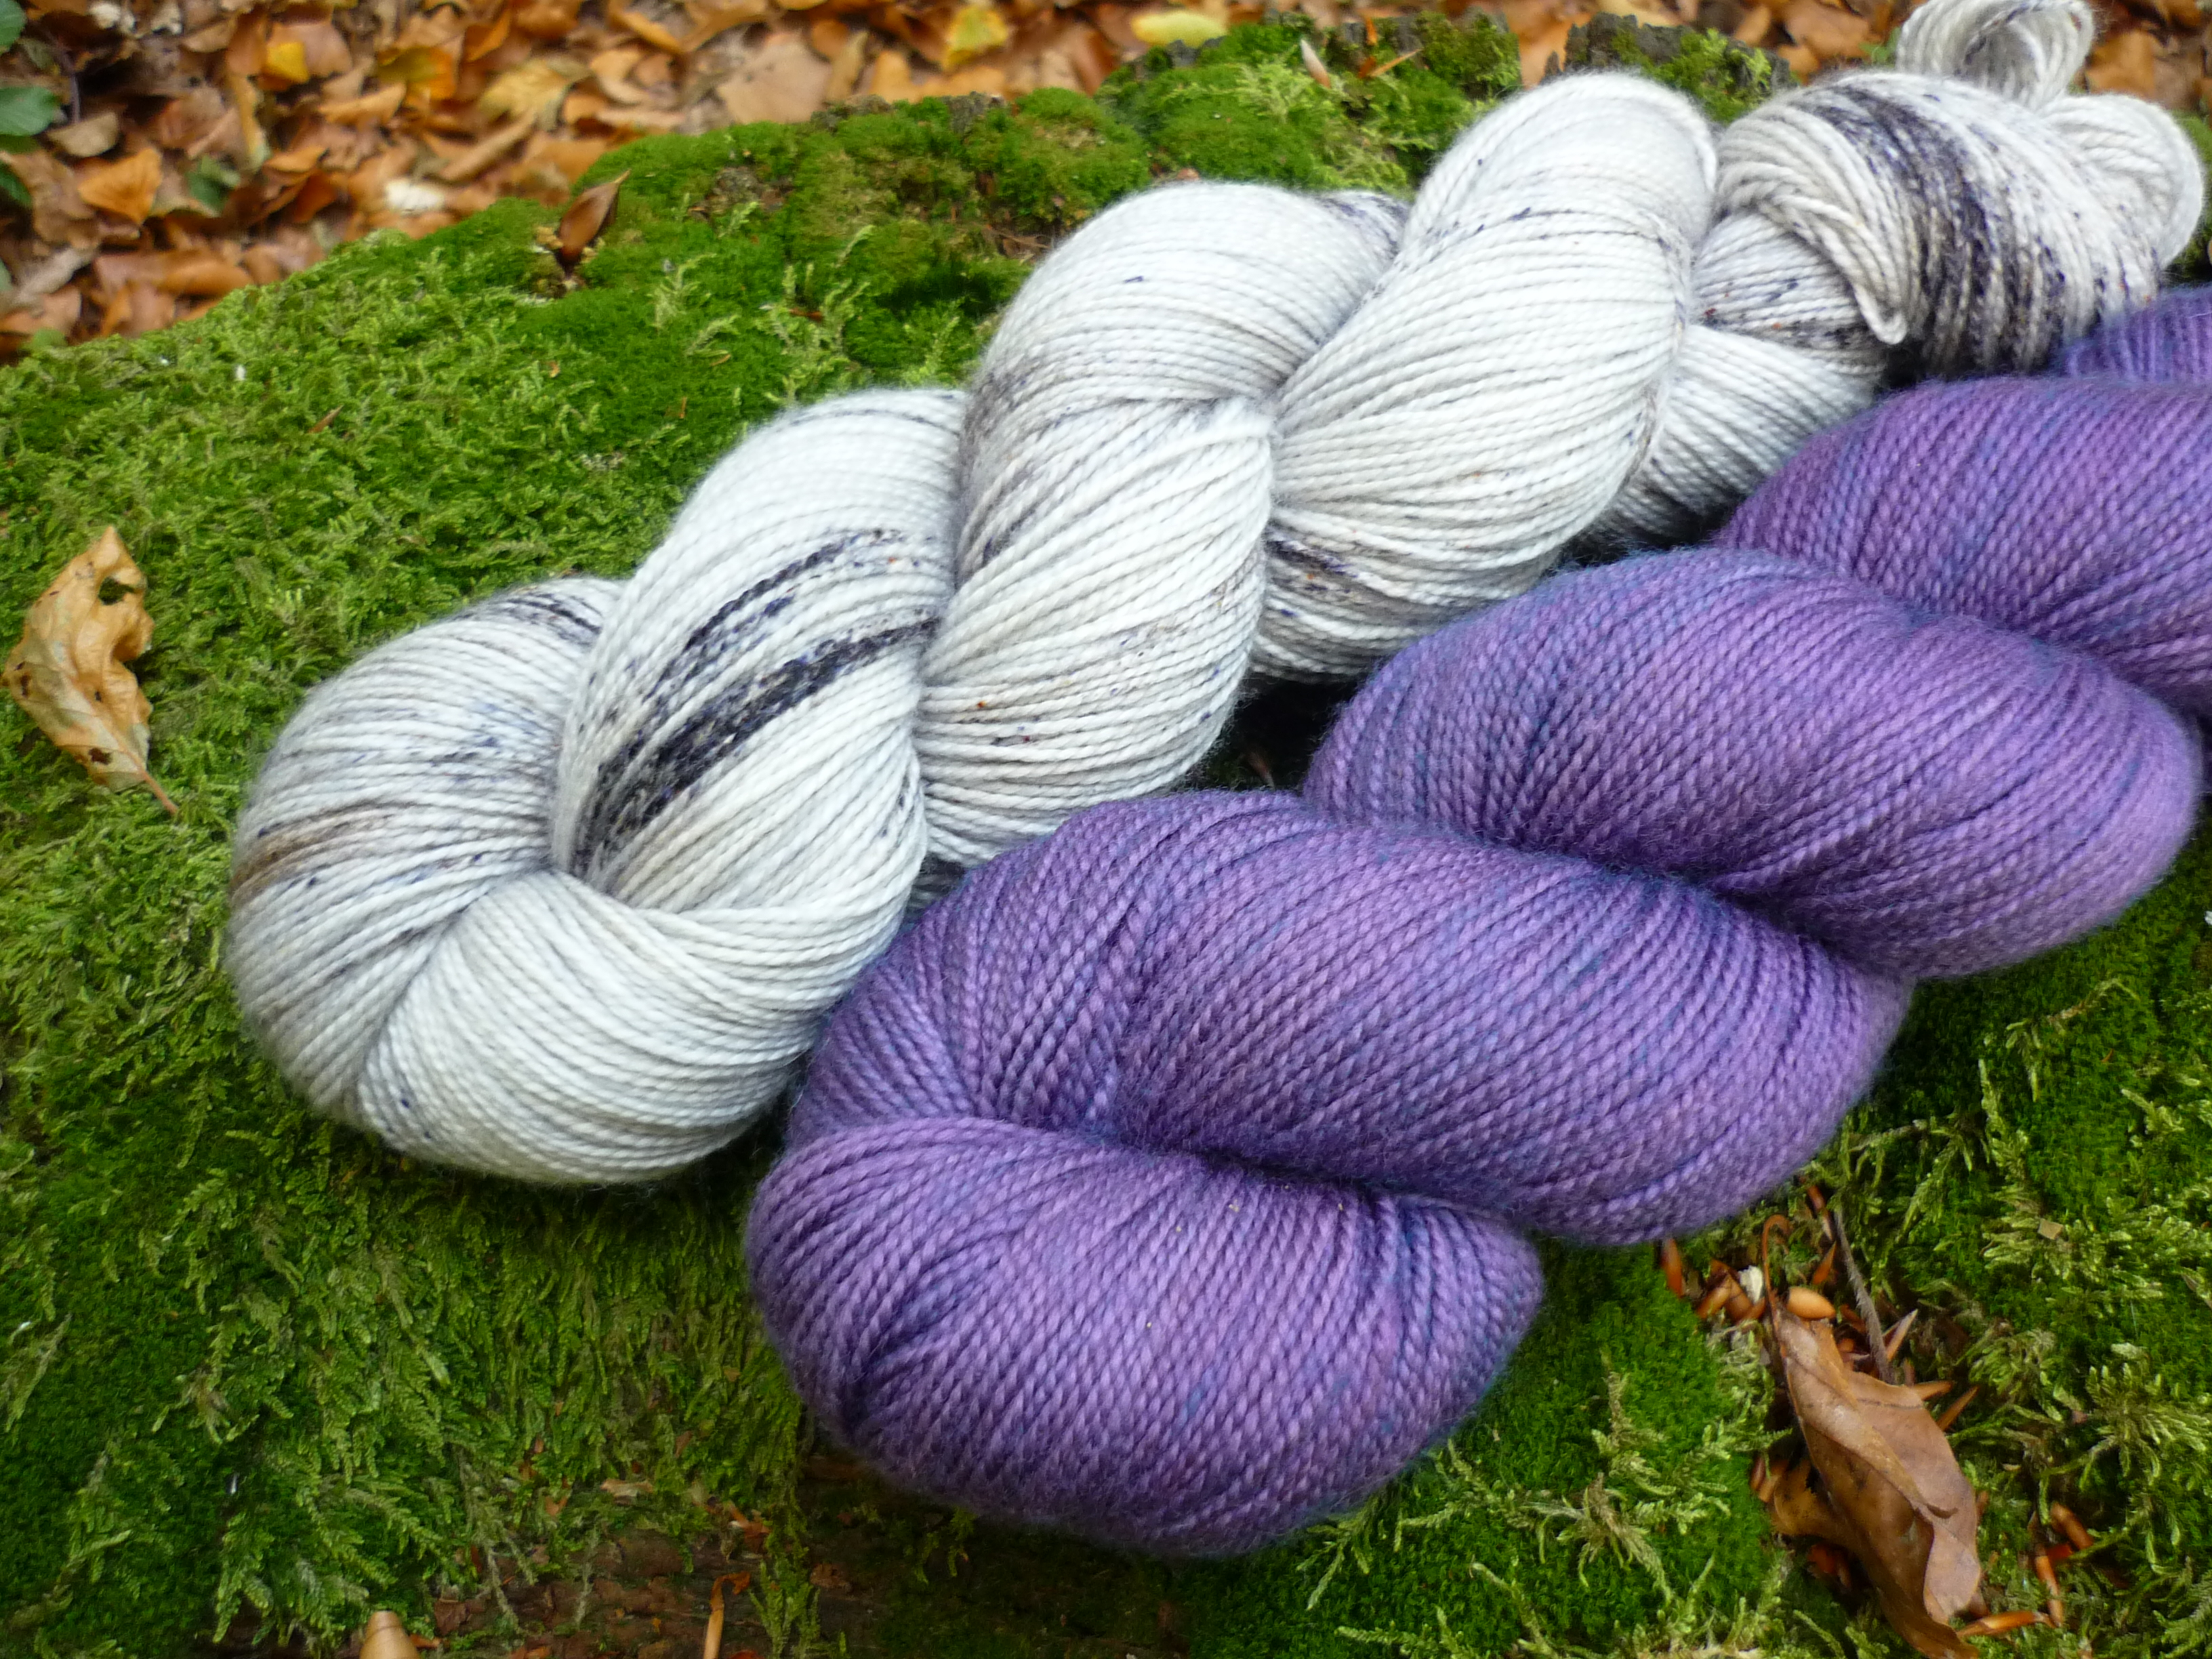 kit-sedum-violette-sucree